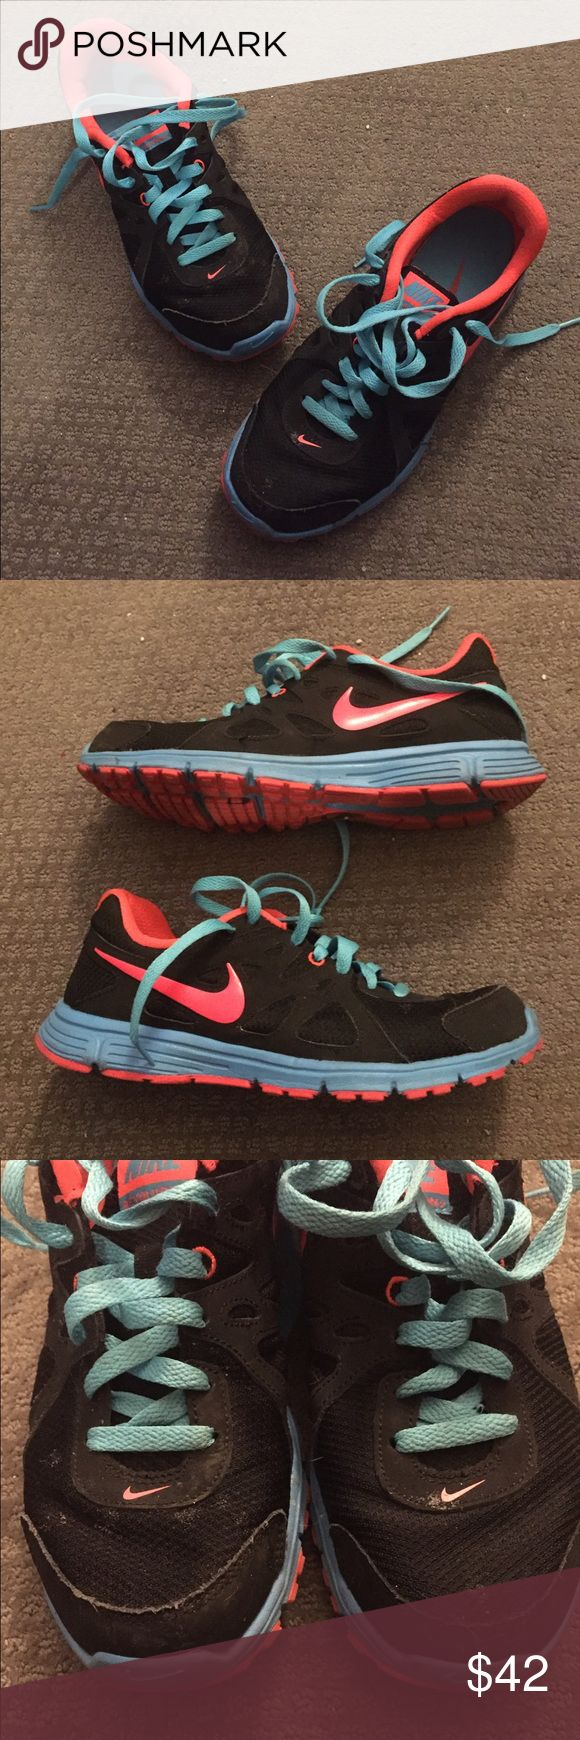 Great condition Nikes! Cute unique Nike sneakers in great shape! All flaws are pictured, they just need a quick cleaning and are otherwise near perfect.  •Bundle up and save! 🛍 •Reasonable offers are welcomed! 💲 •All items from a smoke-free home. 🚭 •More pictures available upon request! 📸 •Thanks for looking! ☮💙☺️ Nike Shoes Athletic Shoes